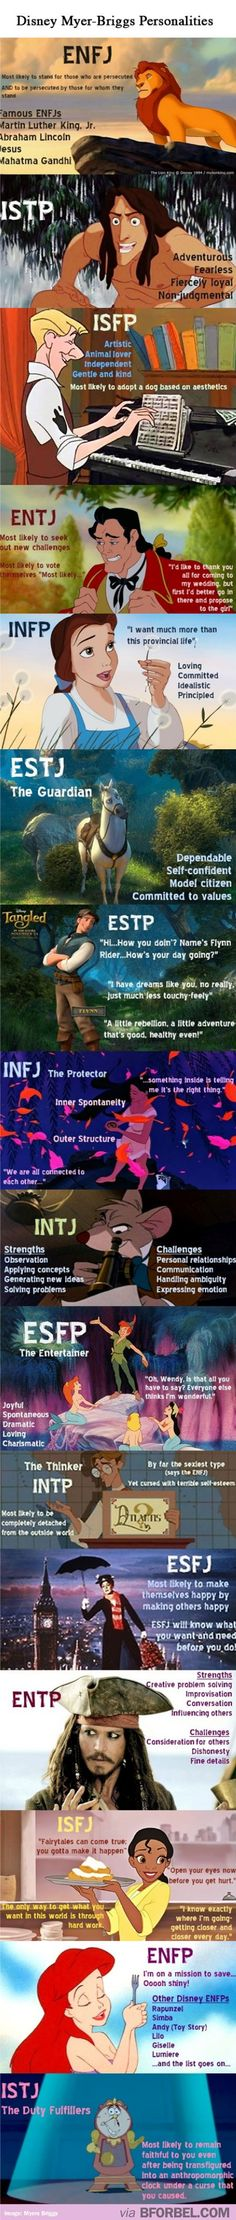 Disney characters and their Myer Brigg Personalities.